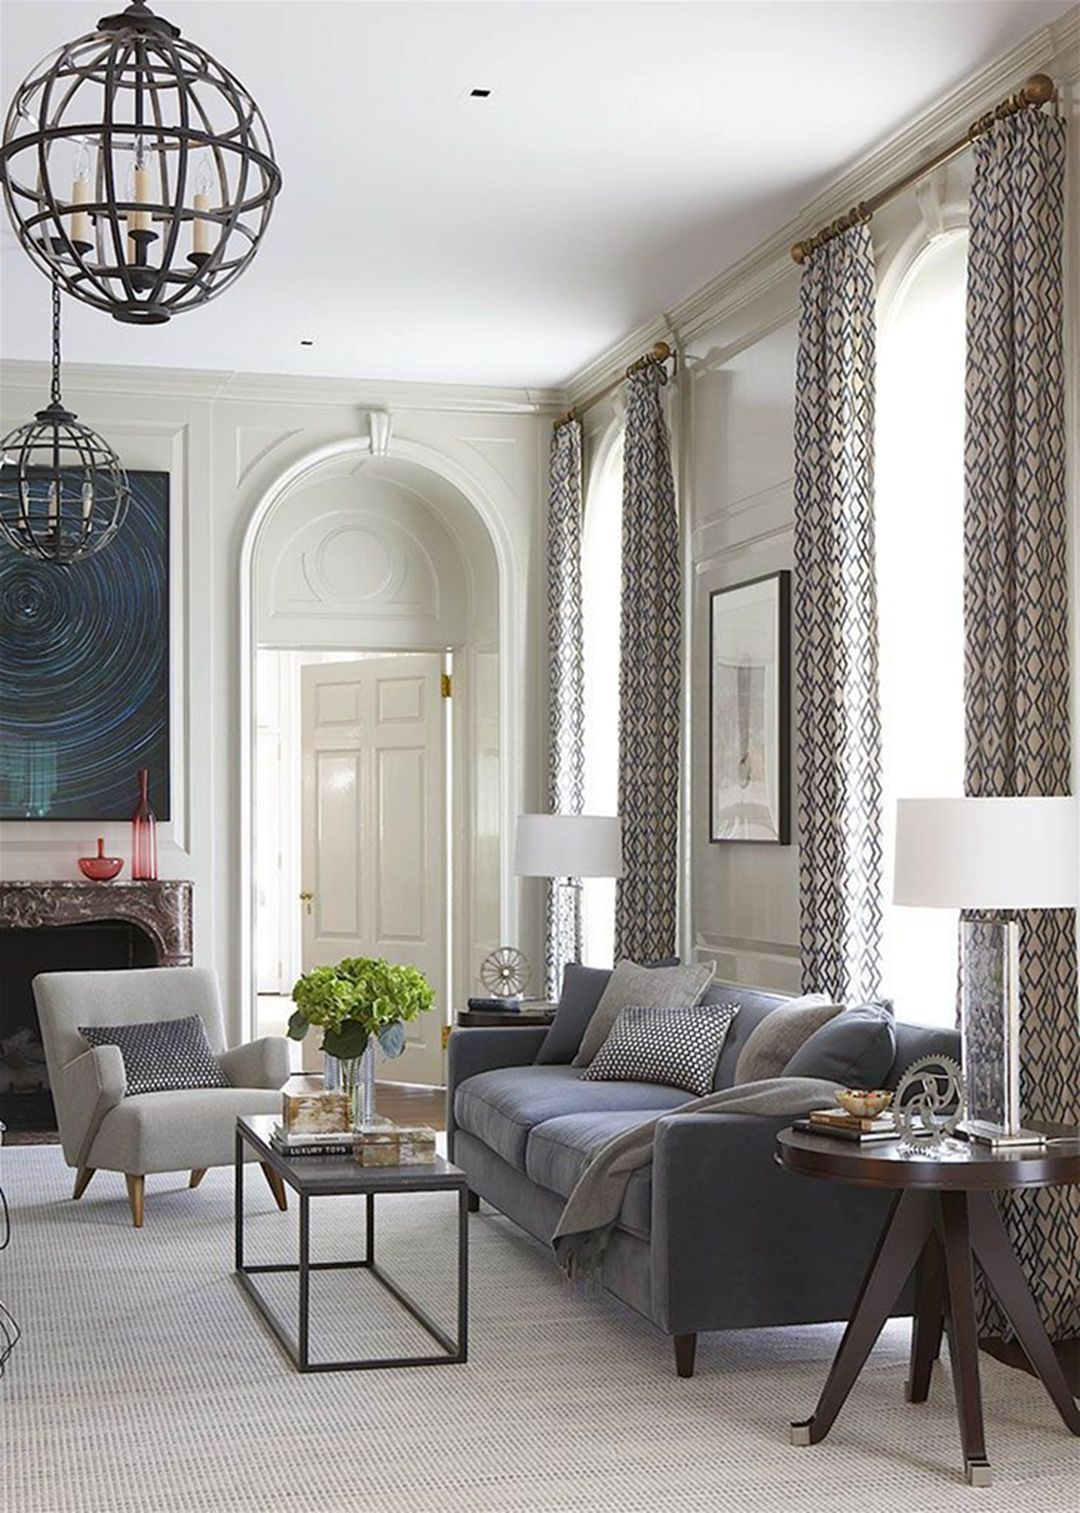 Enhance Your Senses With Luxury Home Decor In 2020 American